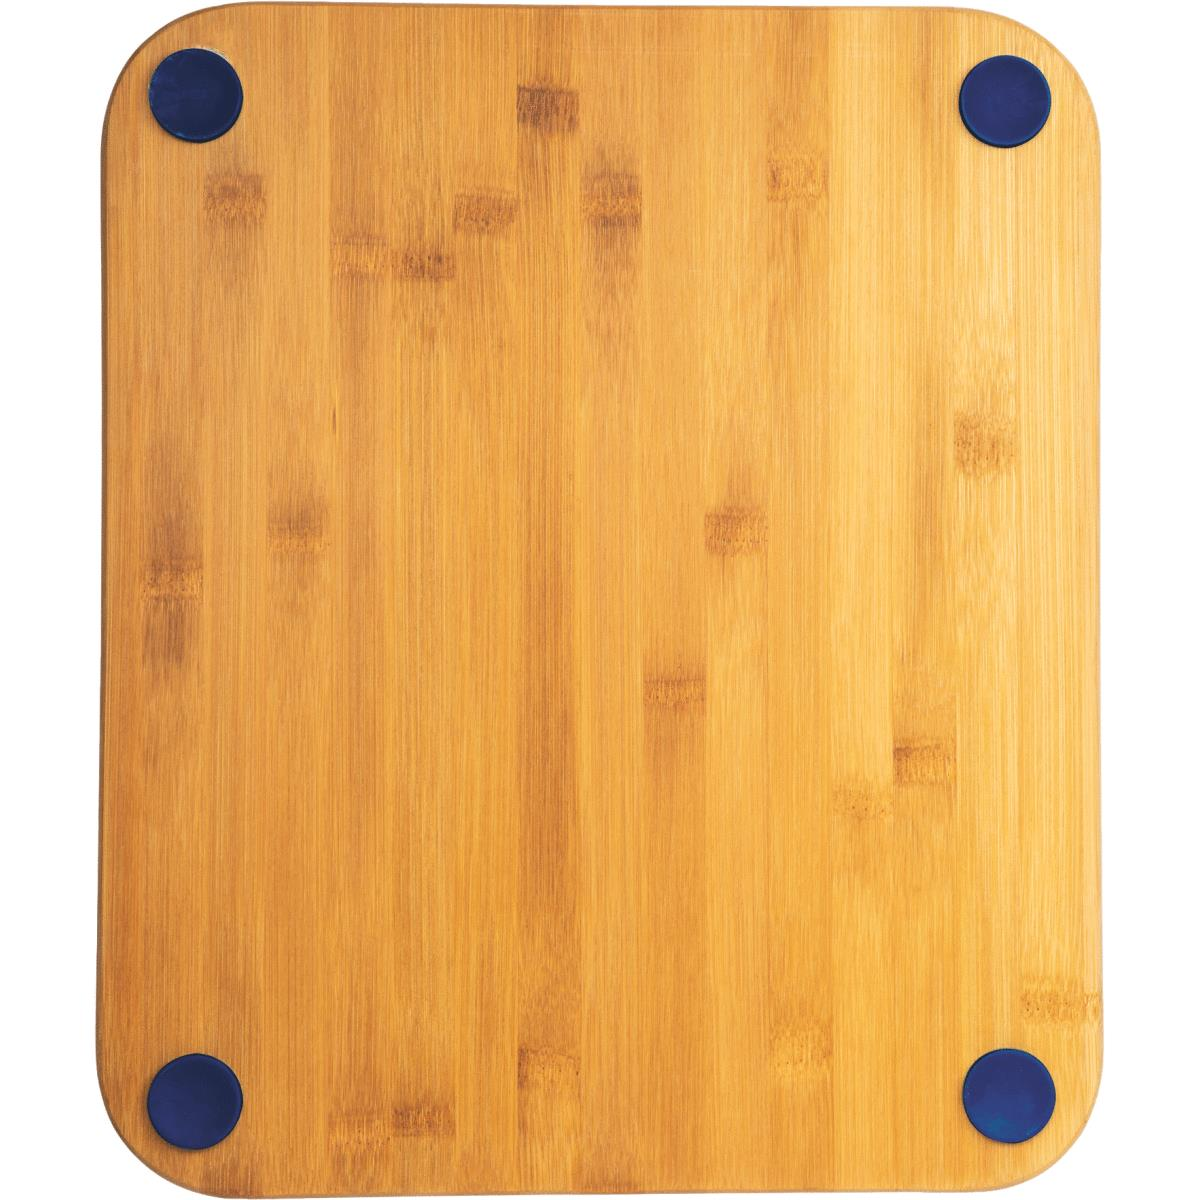 Core Footed Grip Natural Bamboo Cutting Board